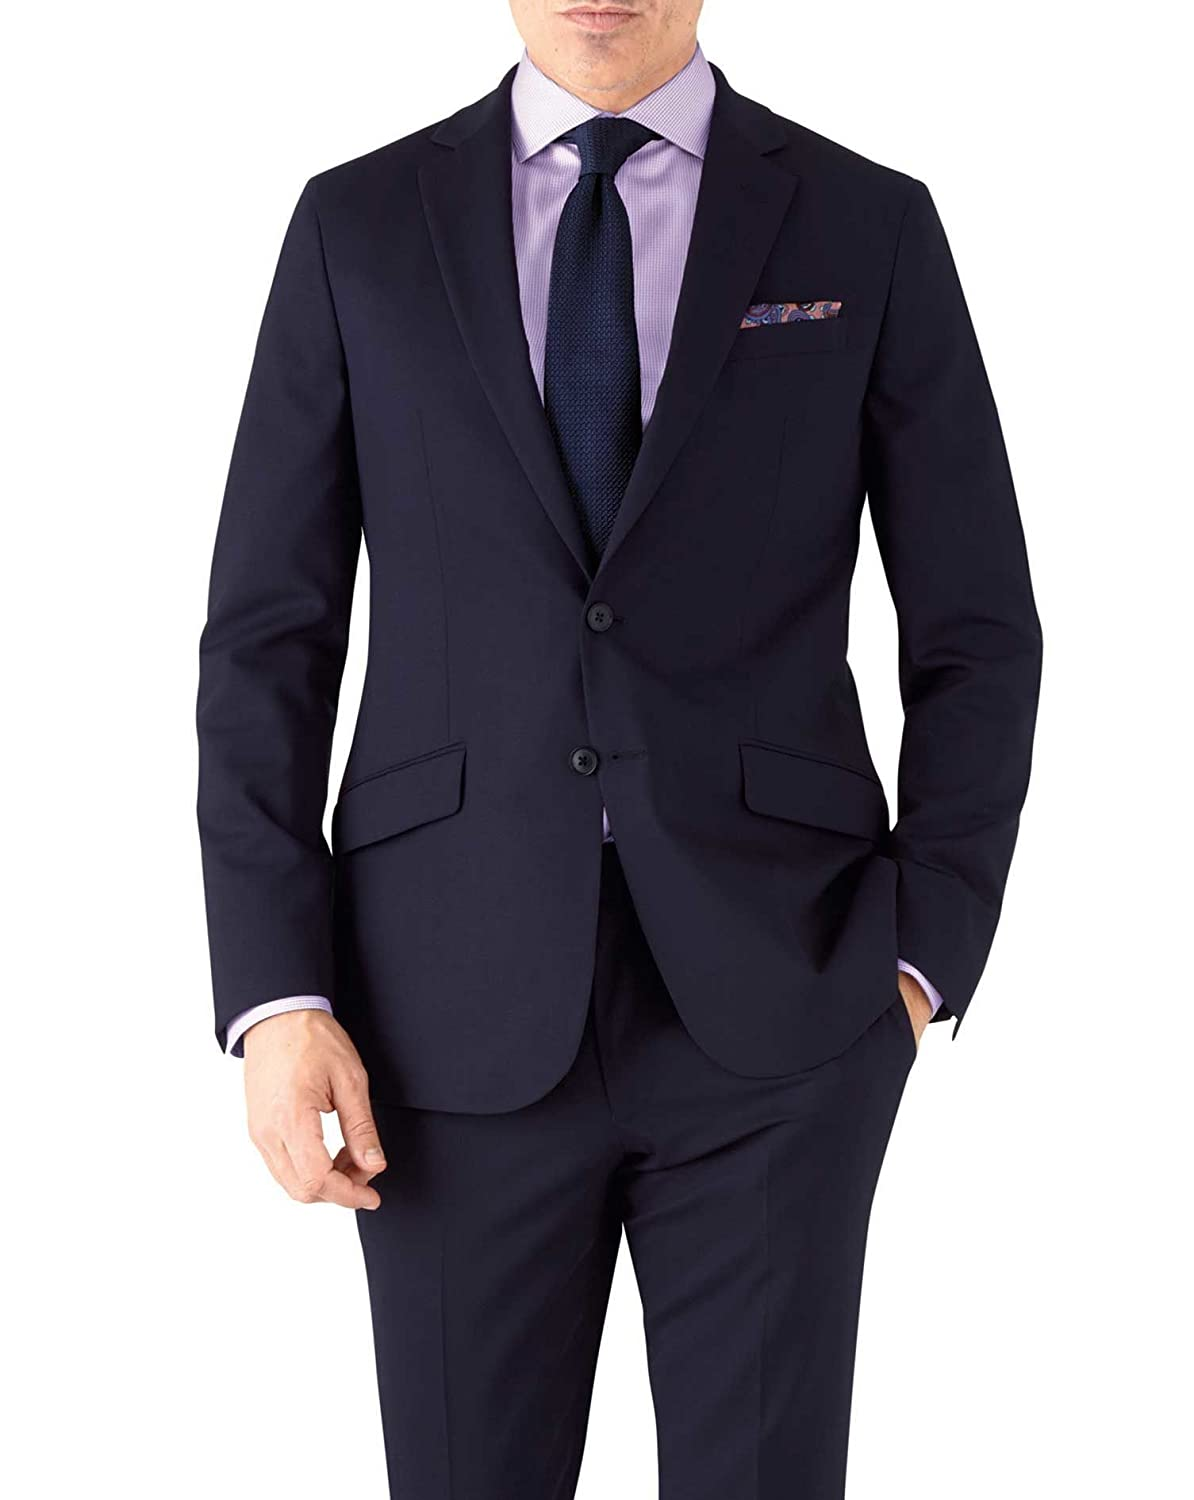 2bf0dad6e722 Navy Slim Fit Performance Suit Wool_Stretch Jacketby Charles Tyrwhitt:  Amazon.co.uk: Clothing